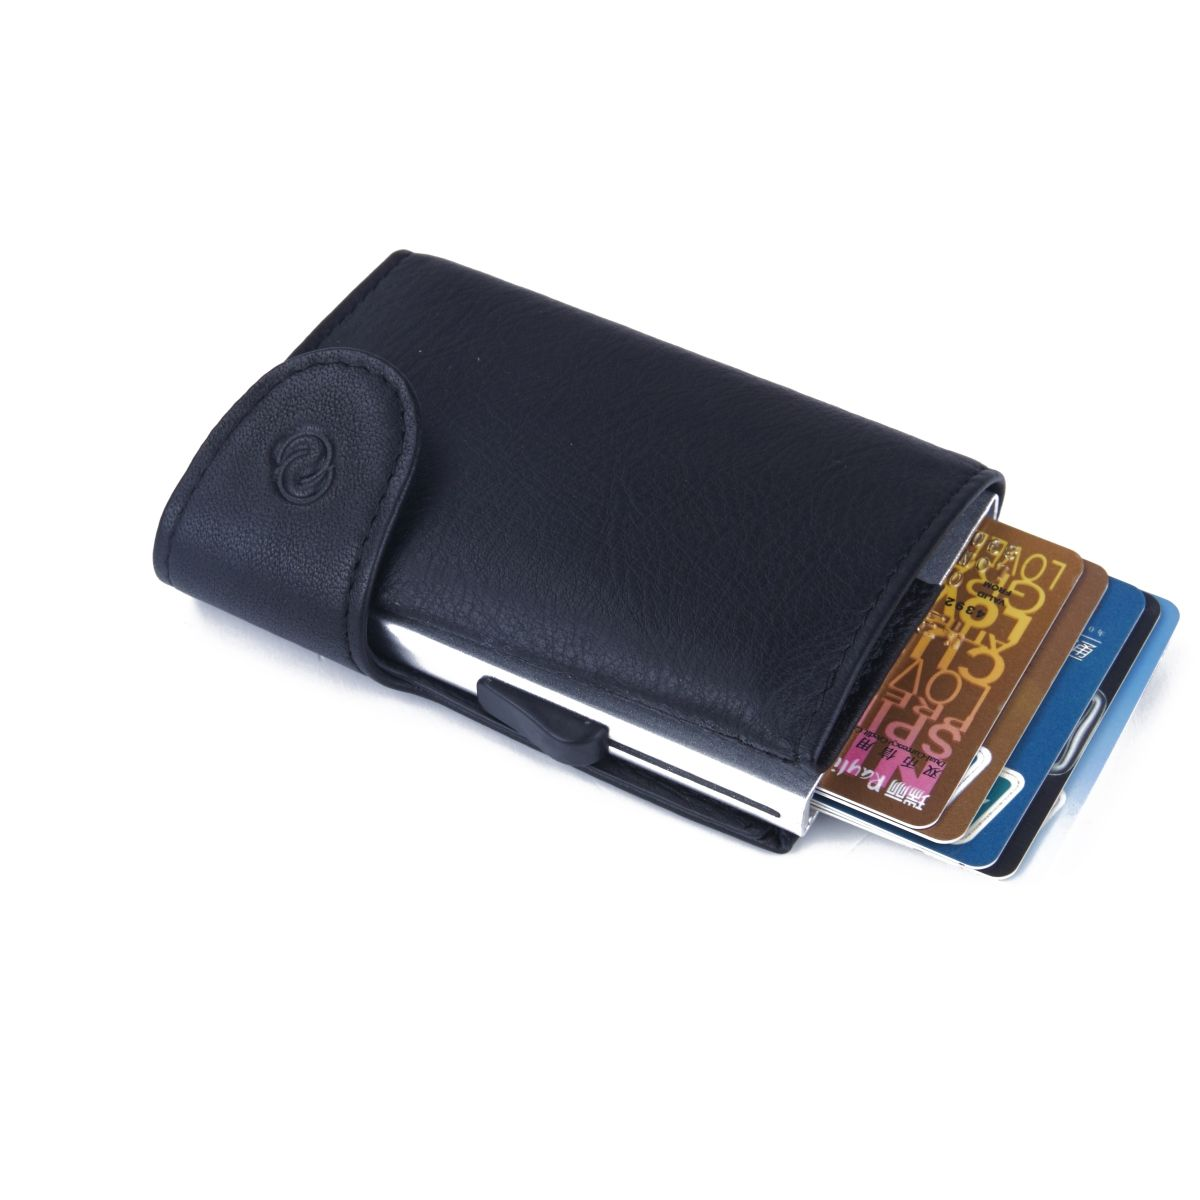 C-Secure Aluminum Card Holder with Genuine Leather - Black